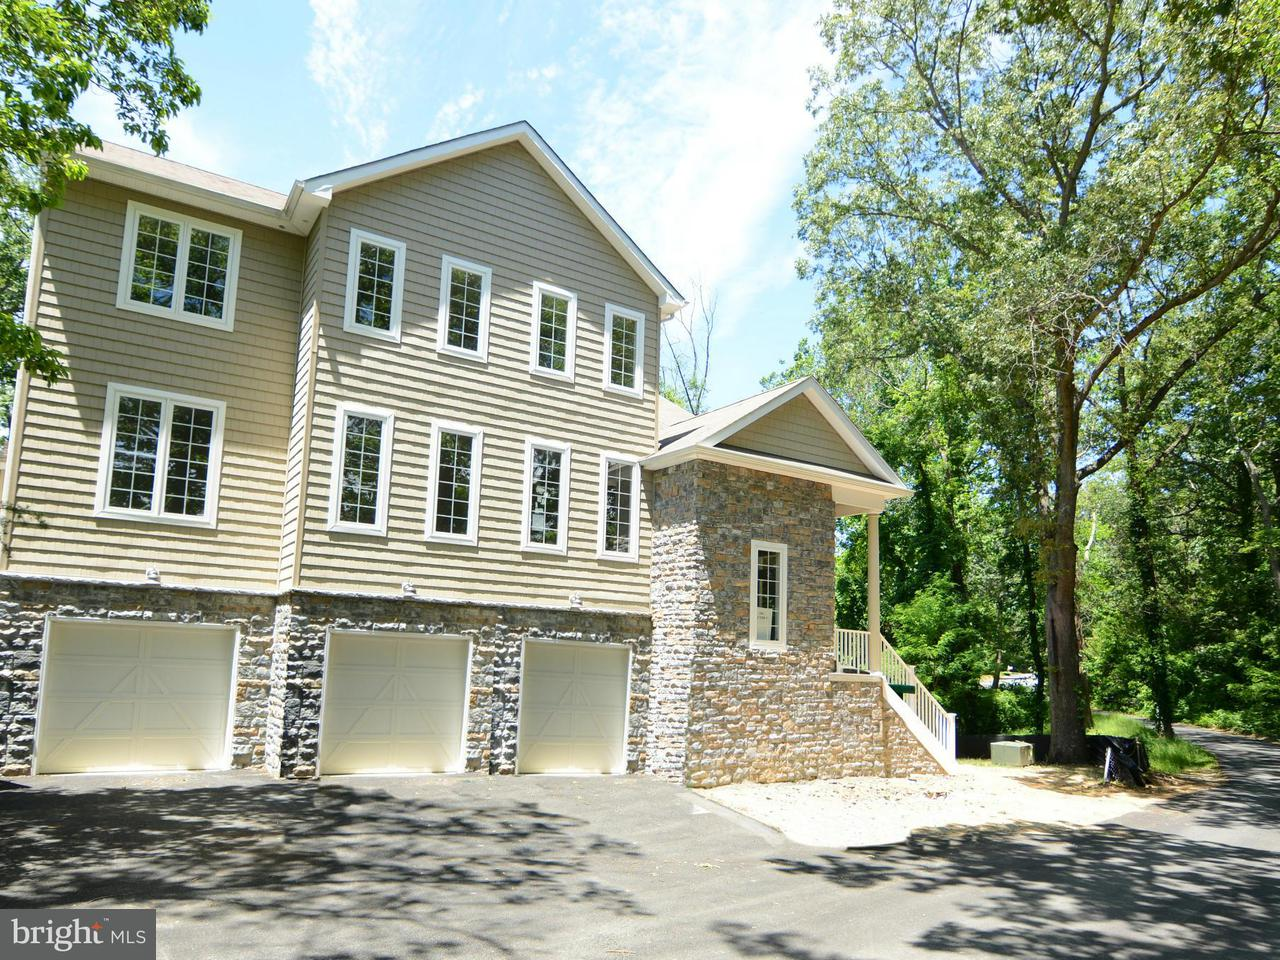 Single Family Home for Sale at 610A HOLLY RIDGE Road 610A HOLLY RIDGE Road Severna Park, Maryland 21146 United States